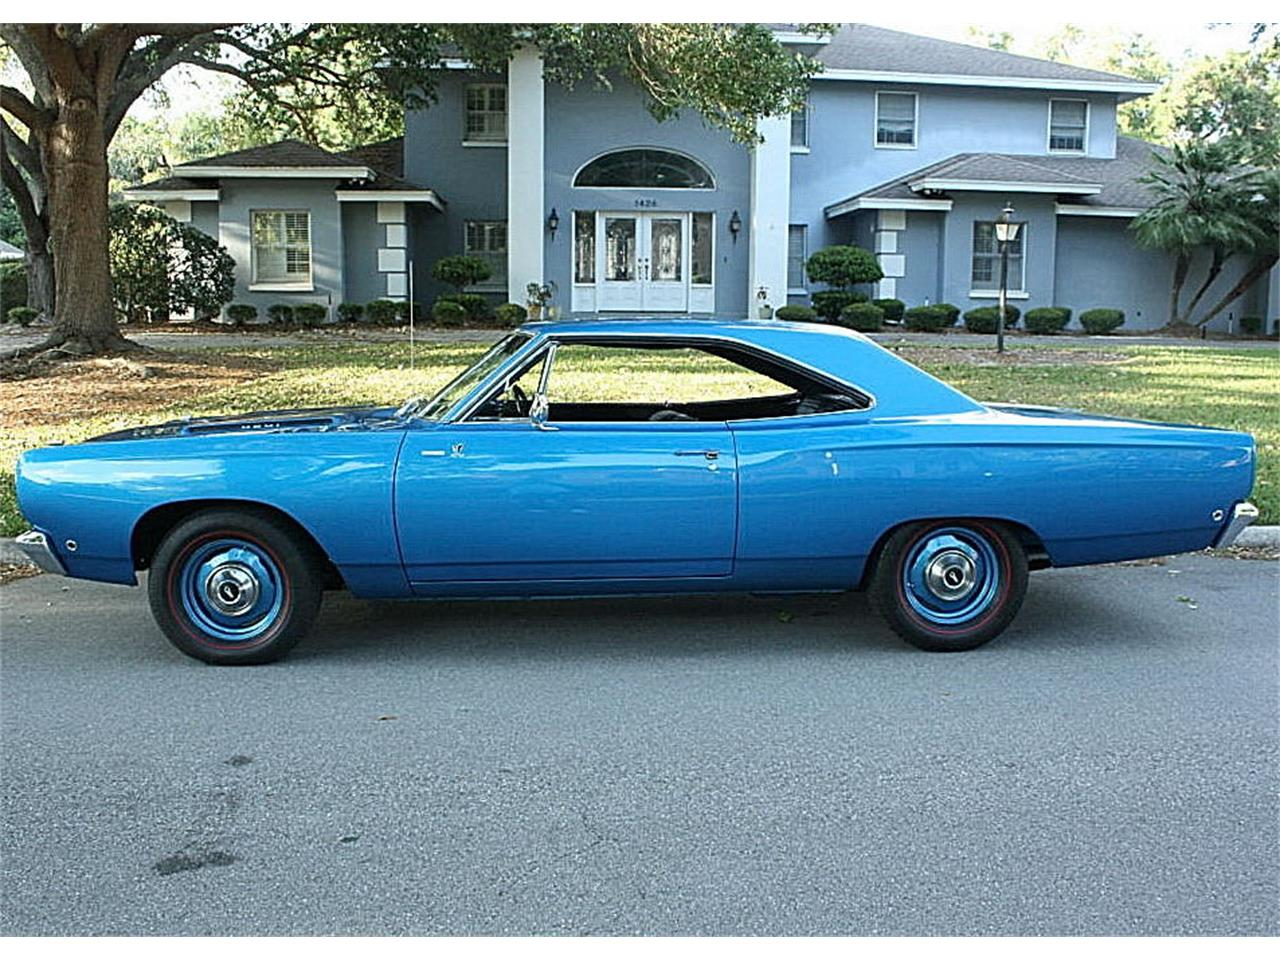 Large Picture of Classic '68 Plymouth Road Runner located in Lakeland Florida - $135,000.00 - N4UW